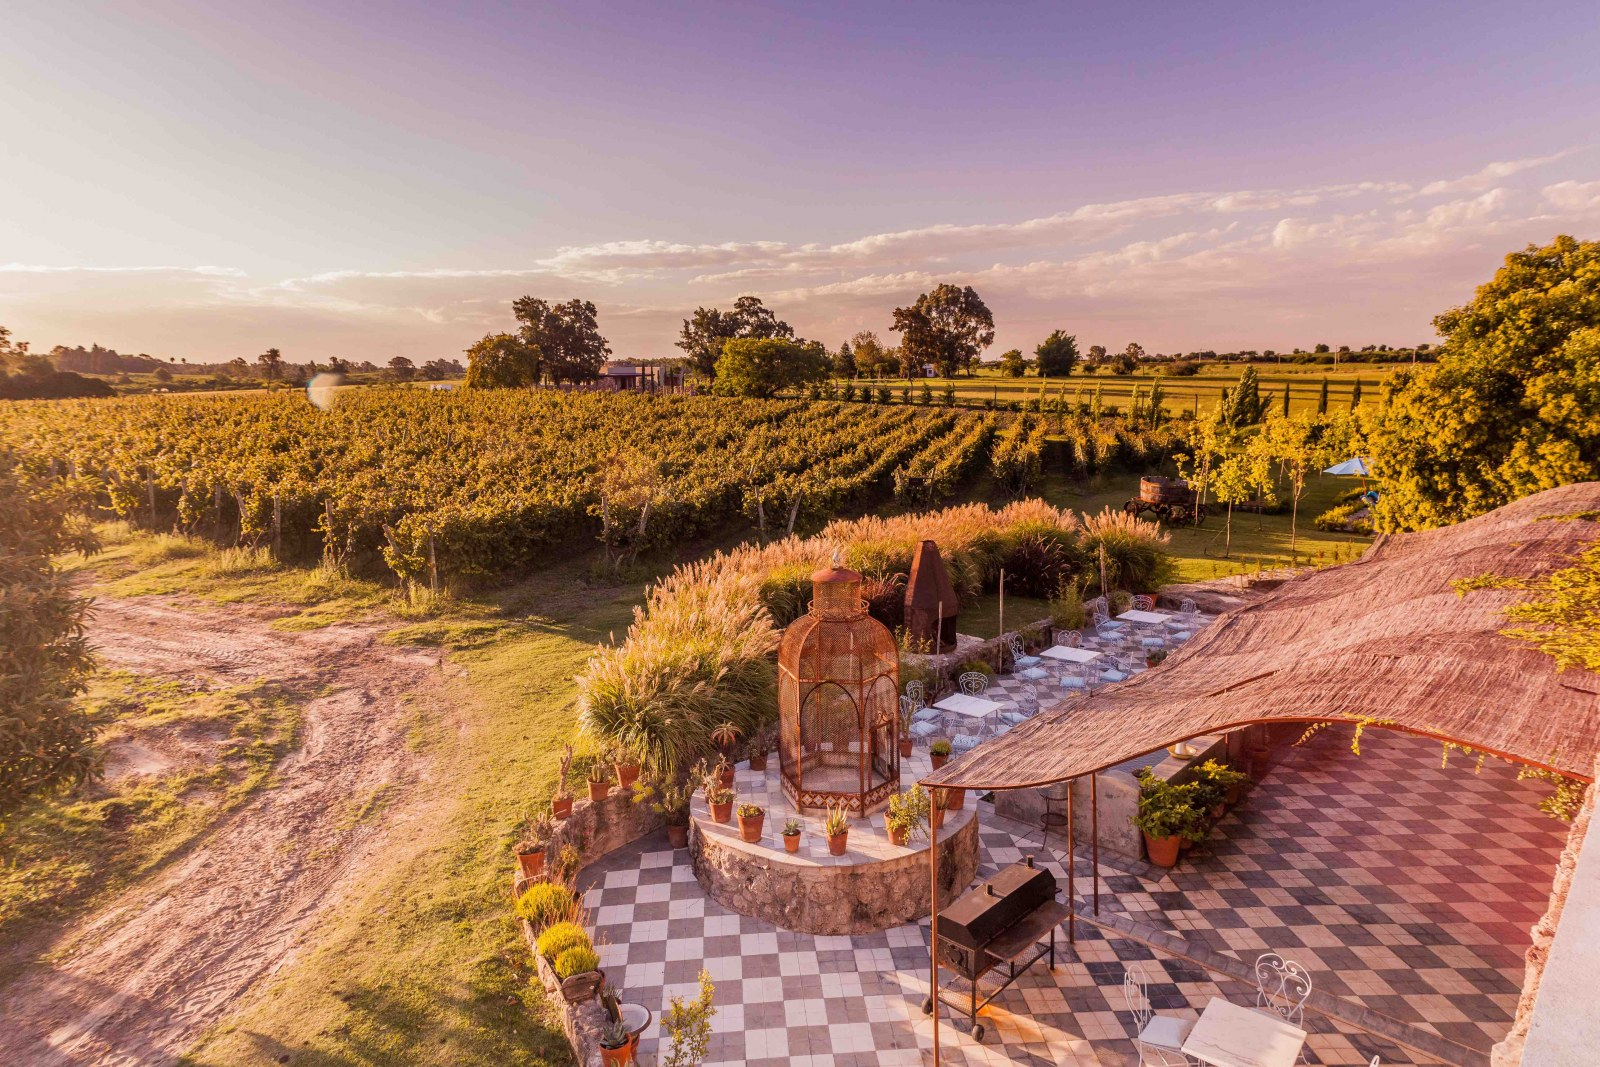 Narbora winery, Carmelo, Uruguay, Supplier Photo (Lures Tours)